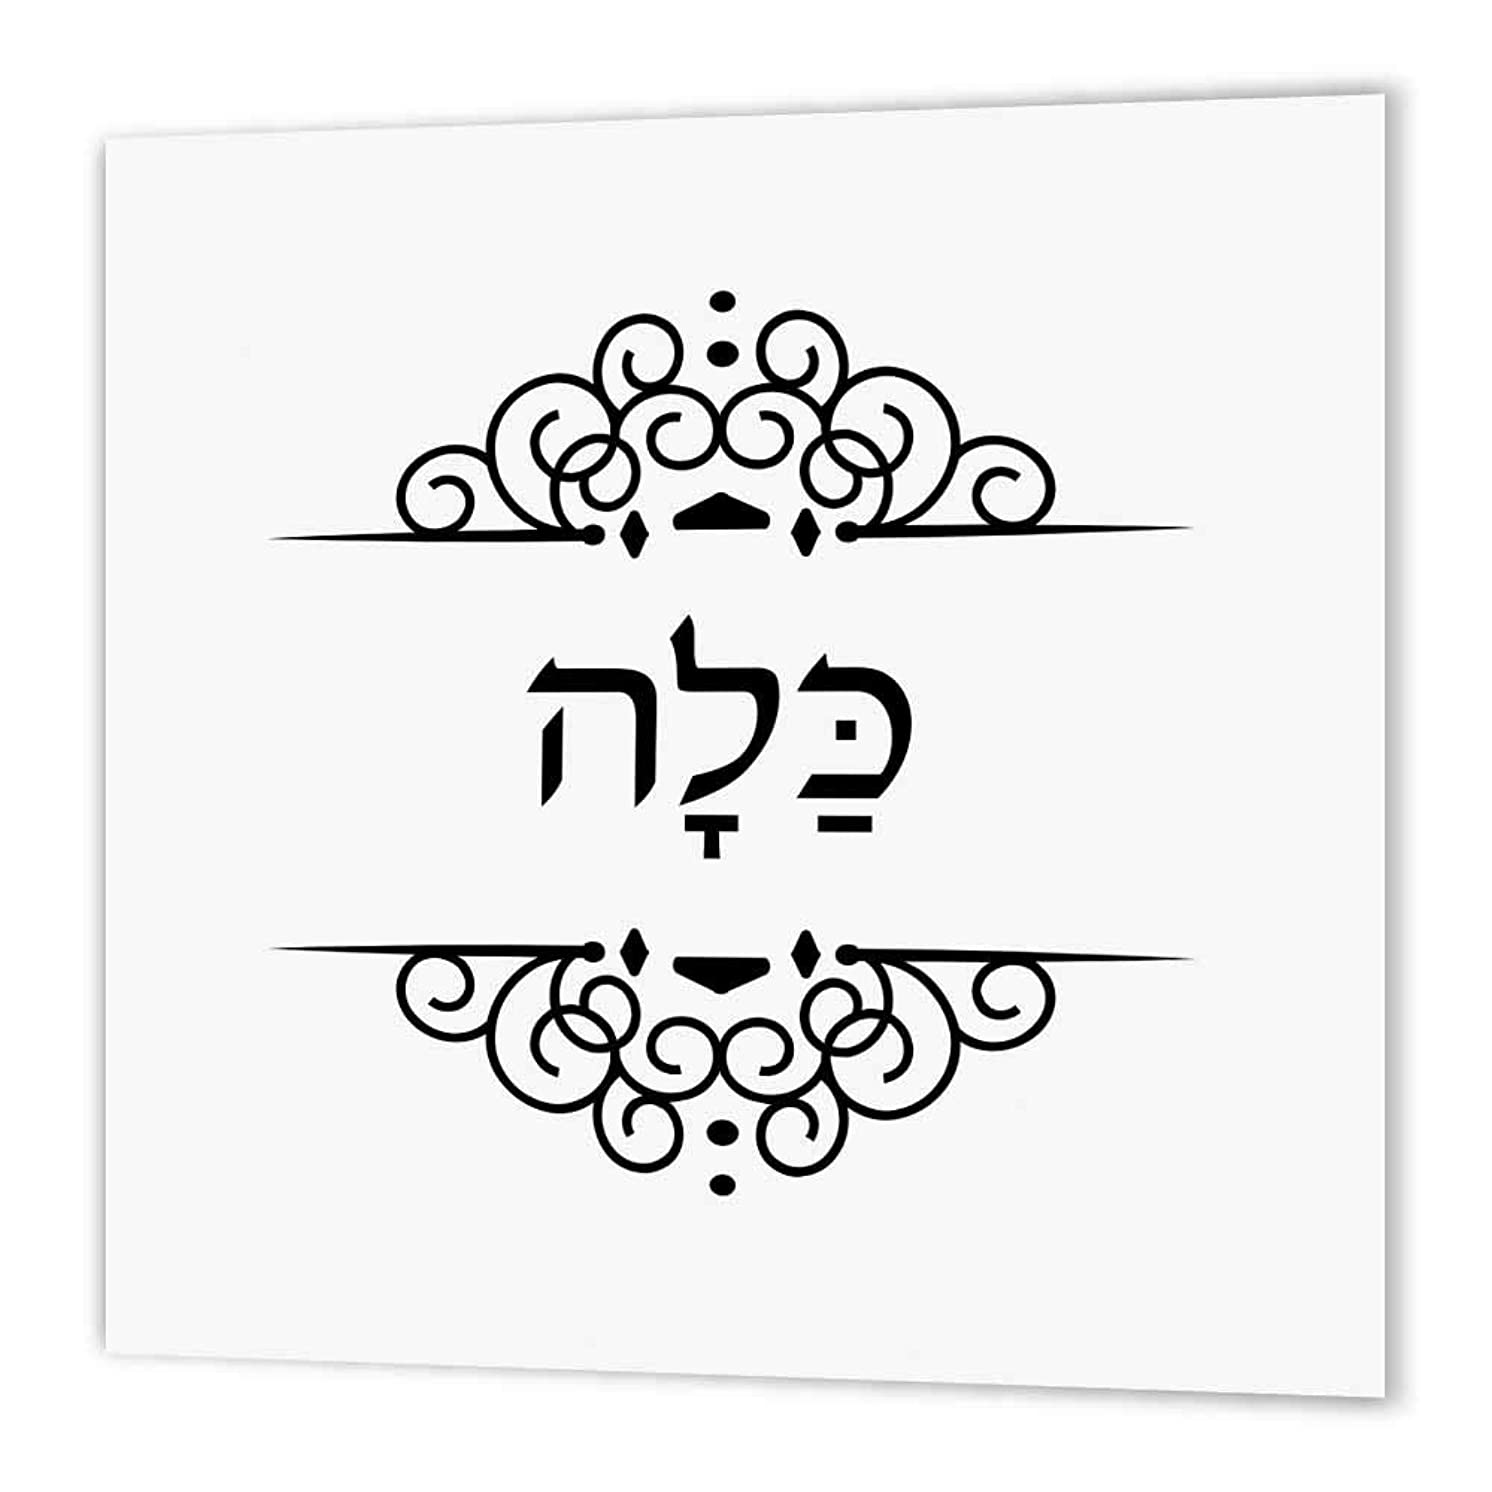 3dRose ht_165039_3 Kalla-Word for Bride in Hebrew-Bridal Half of Bride and Groom Set-Iron on Heat Transfer Paper for White Material, 10 by 10-Inch